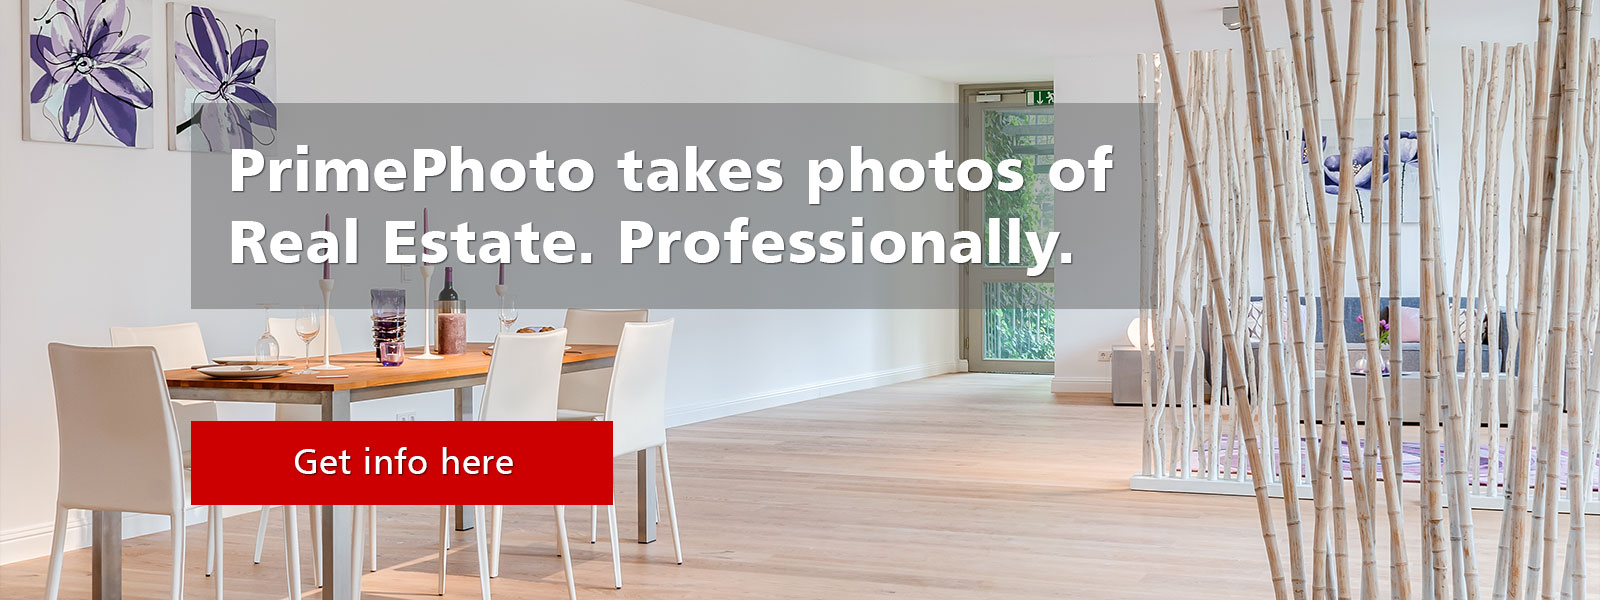 PrimePhoto takes images of real estate. Professionally.